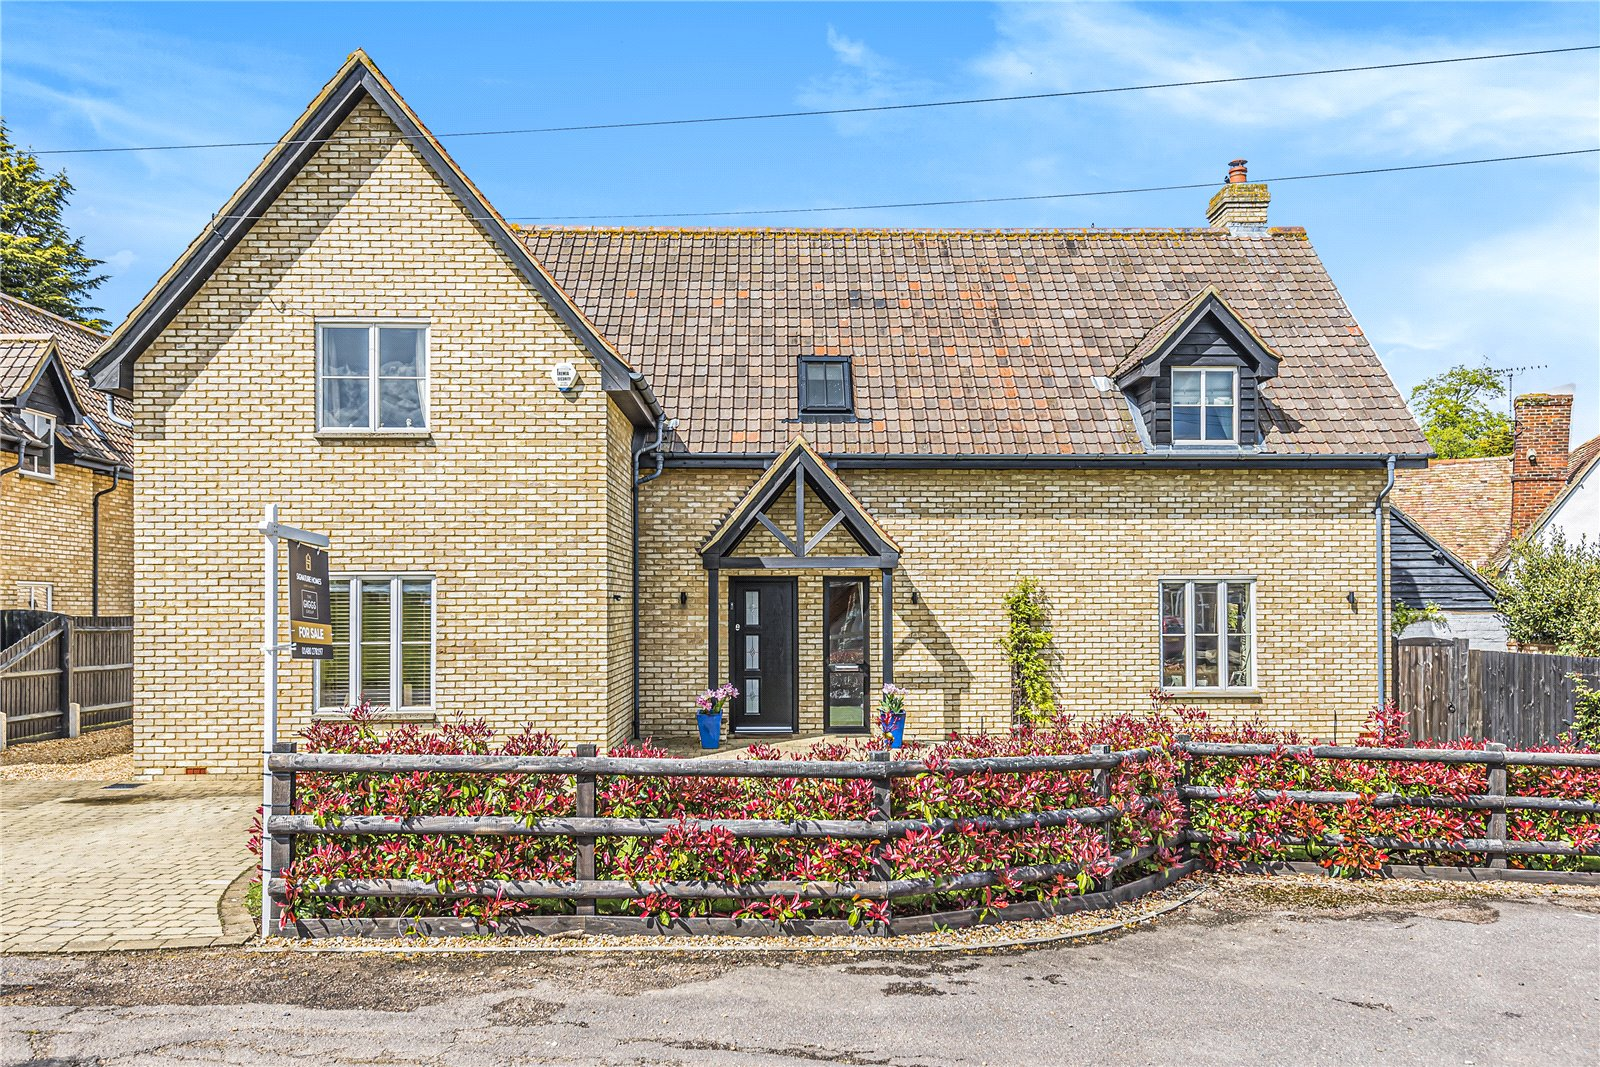 5 bed house for sale in Ford Lane, Roxton - Property Image 1